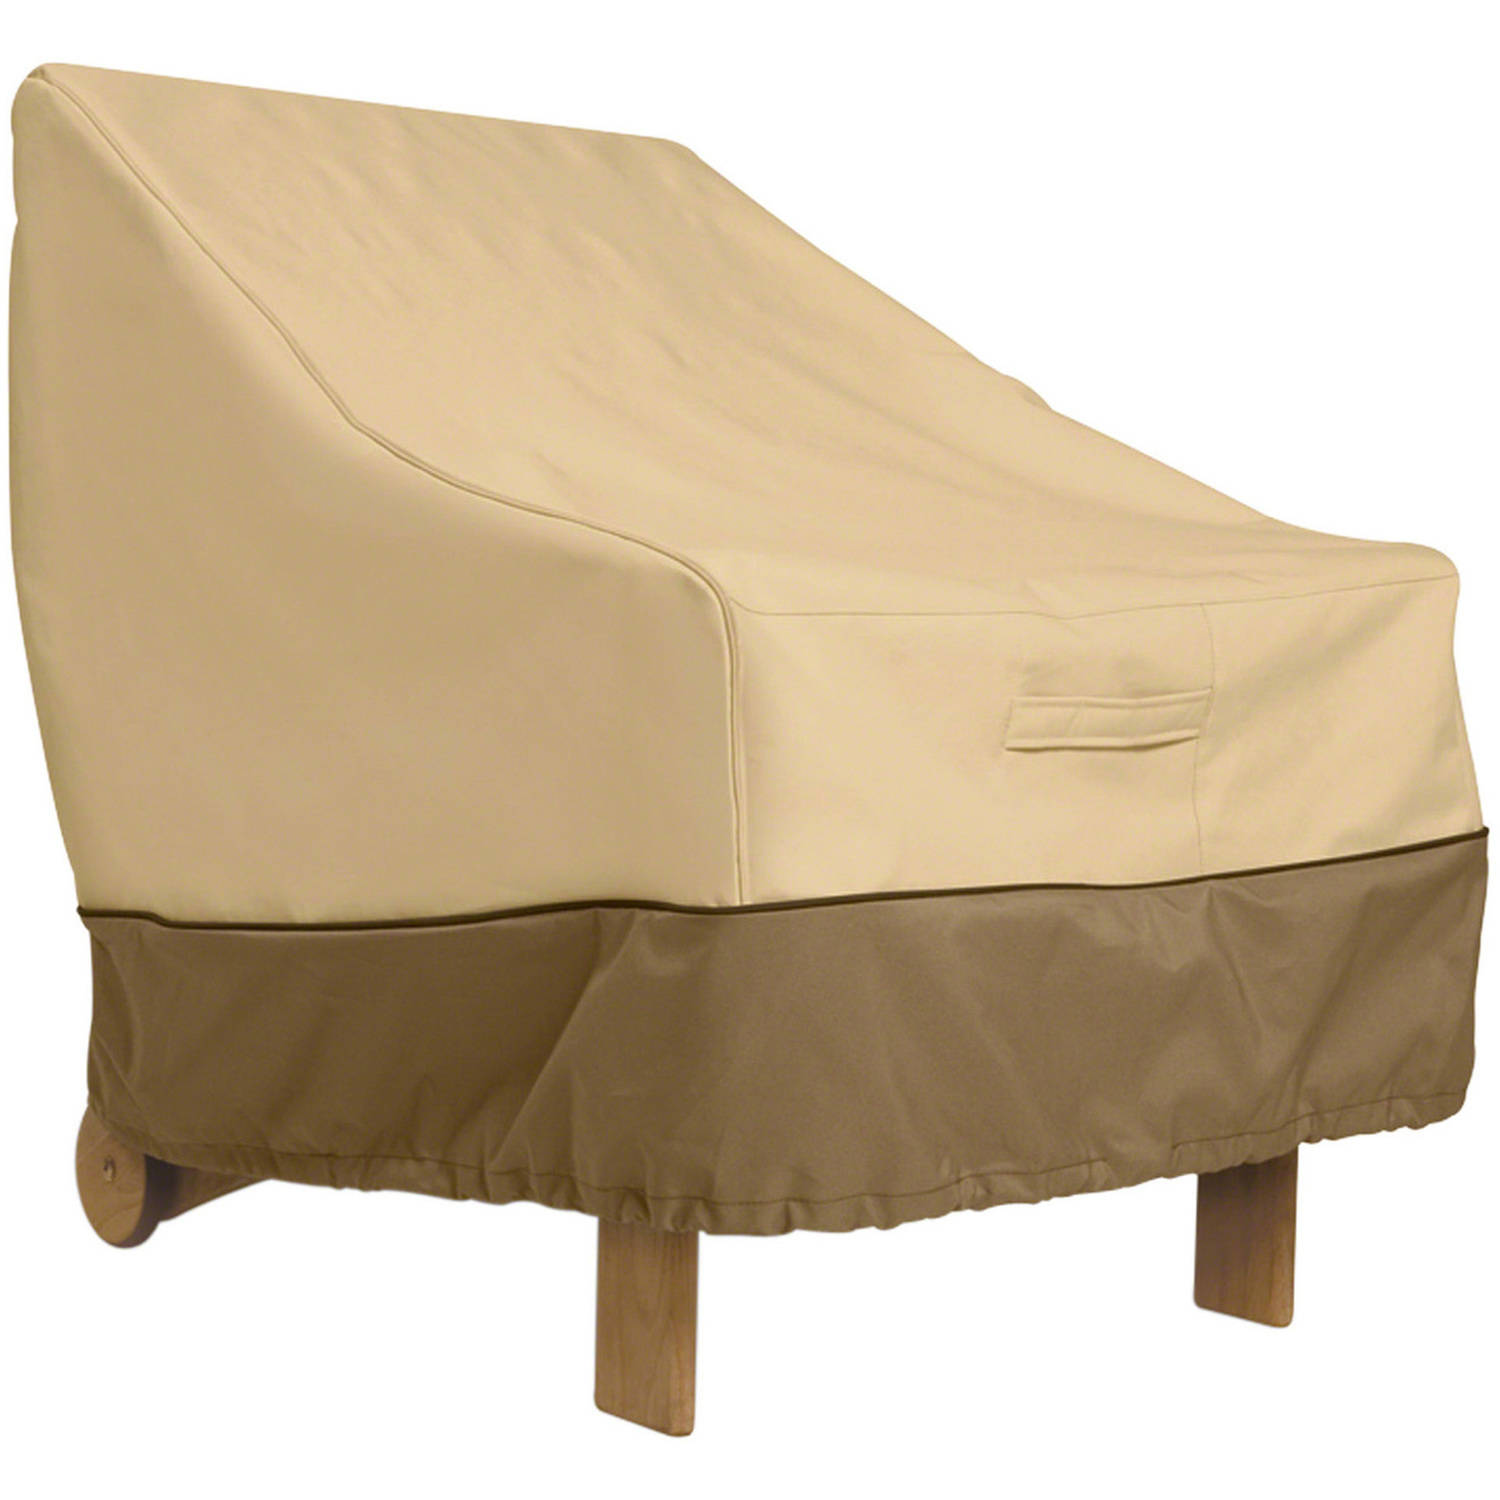 Classic Accessories Veranda Patio Chair Cover - Durable and Water Resistant